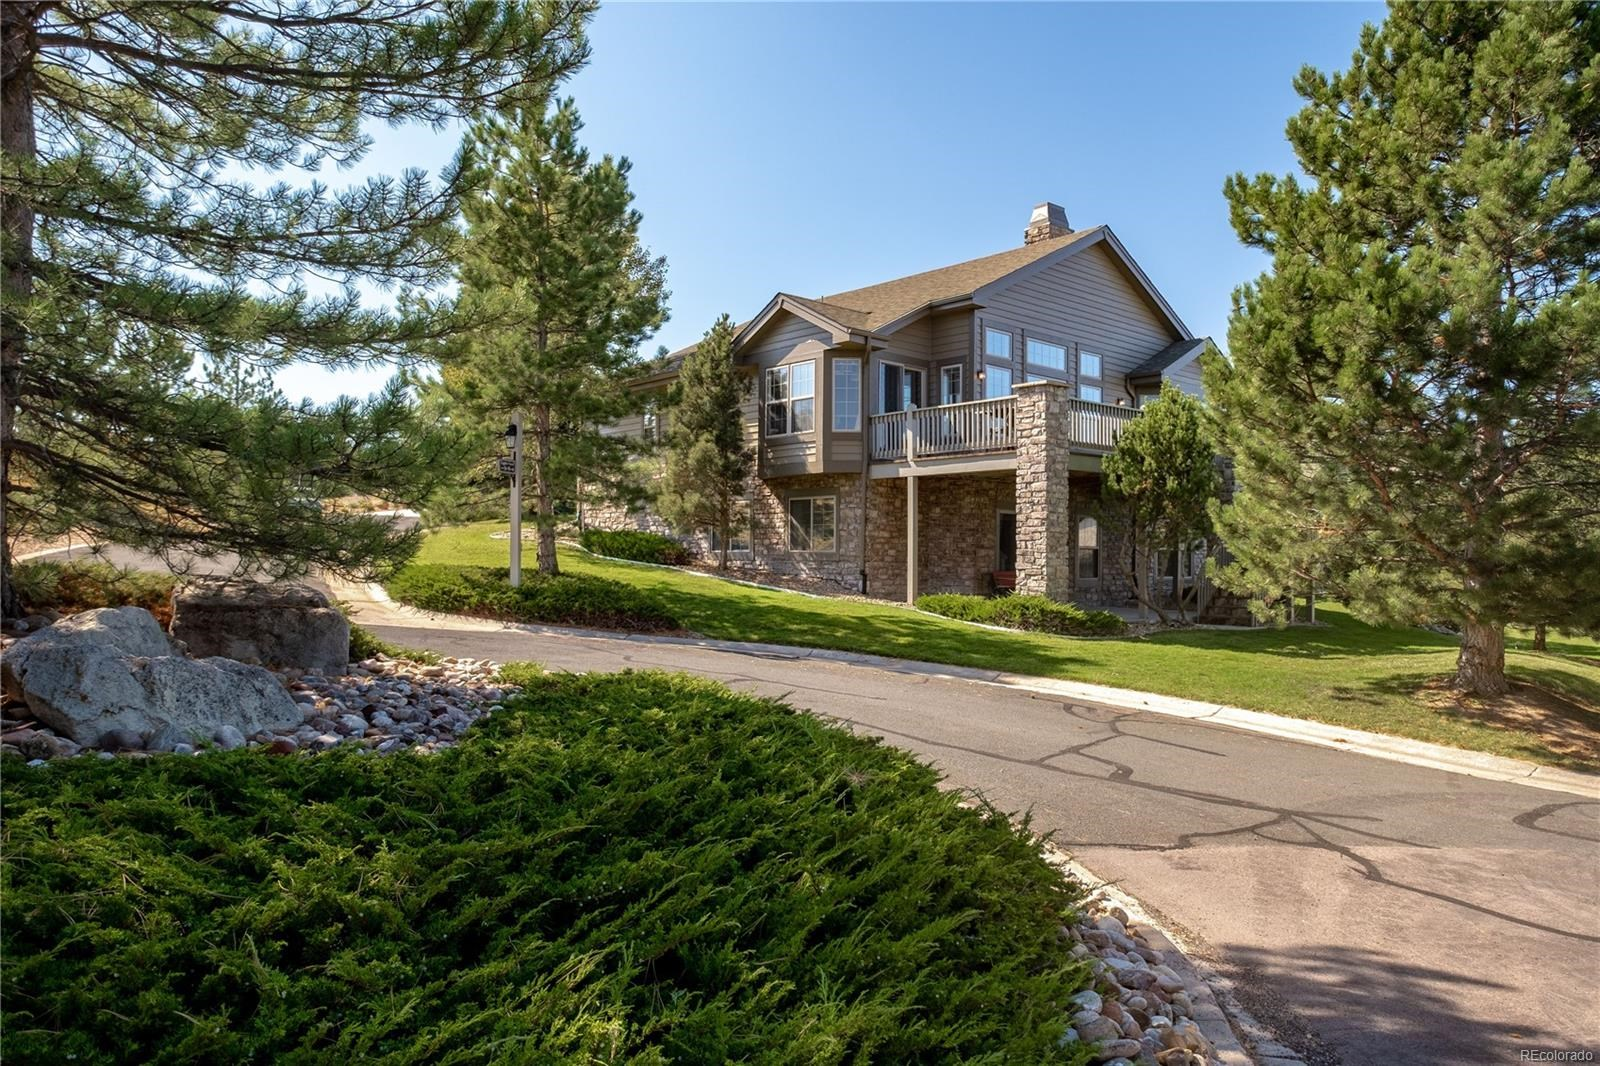 MLS# 9162651 - 34 - 51 Toppler Court, Castle Pines, CO 80108